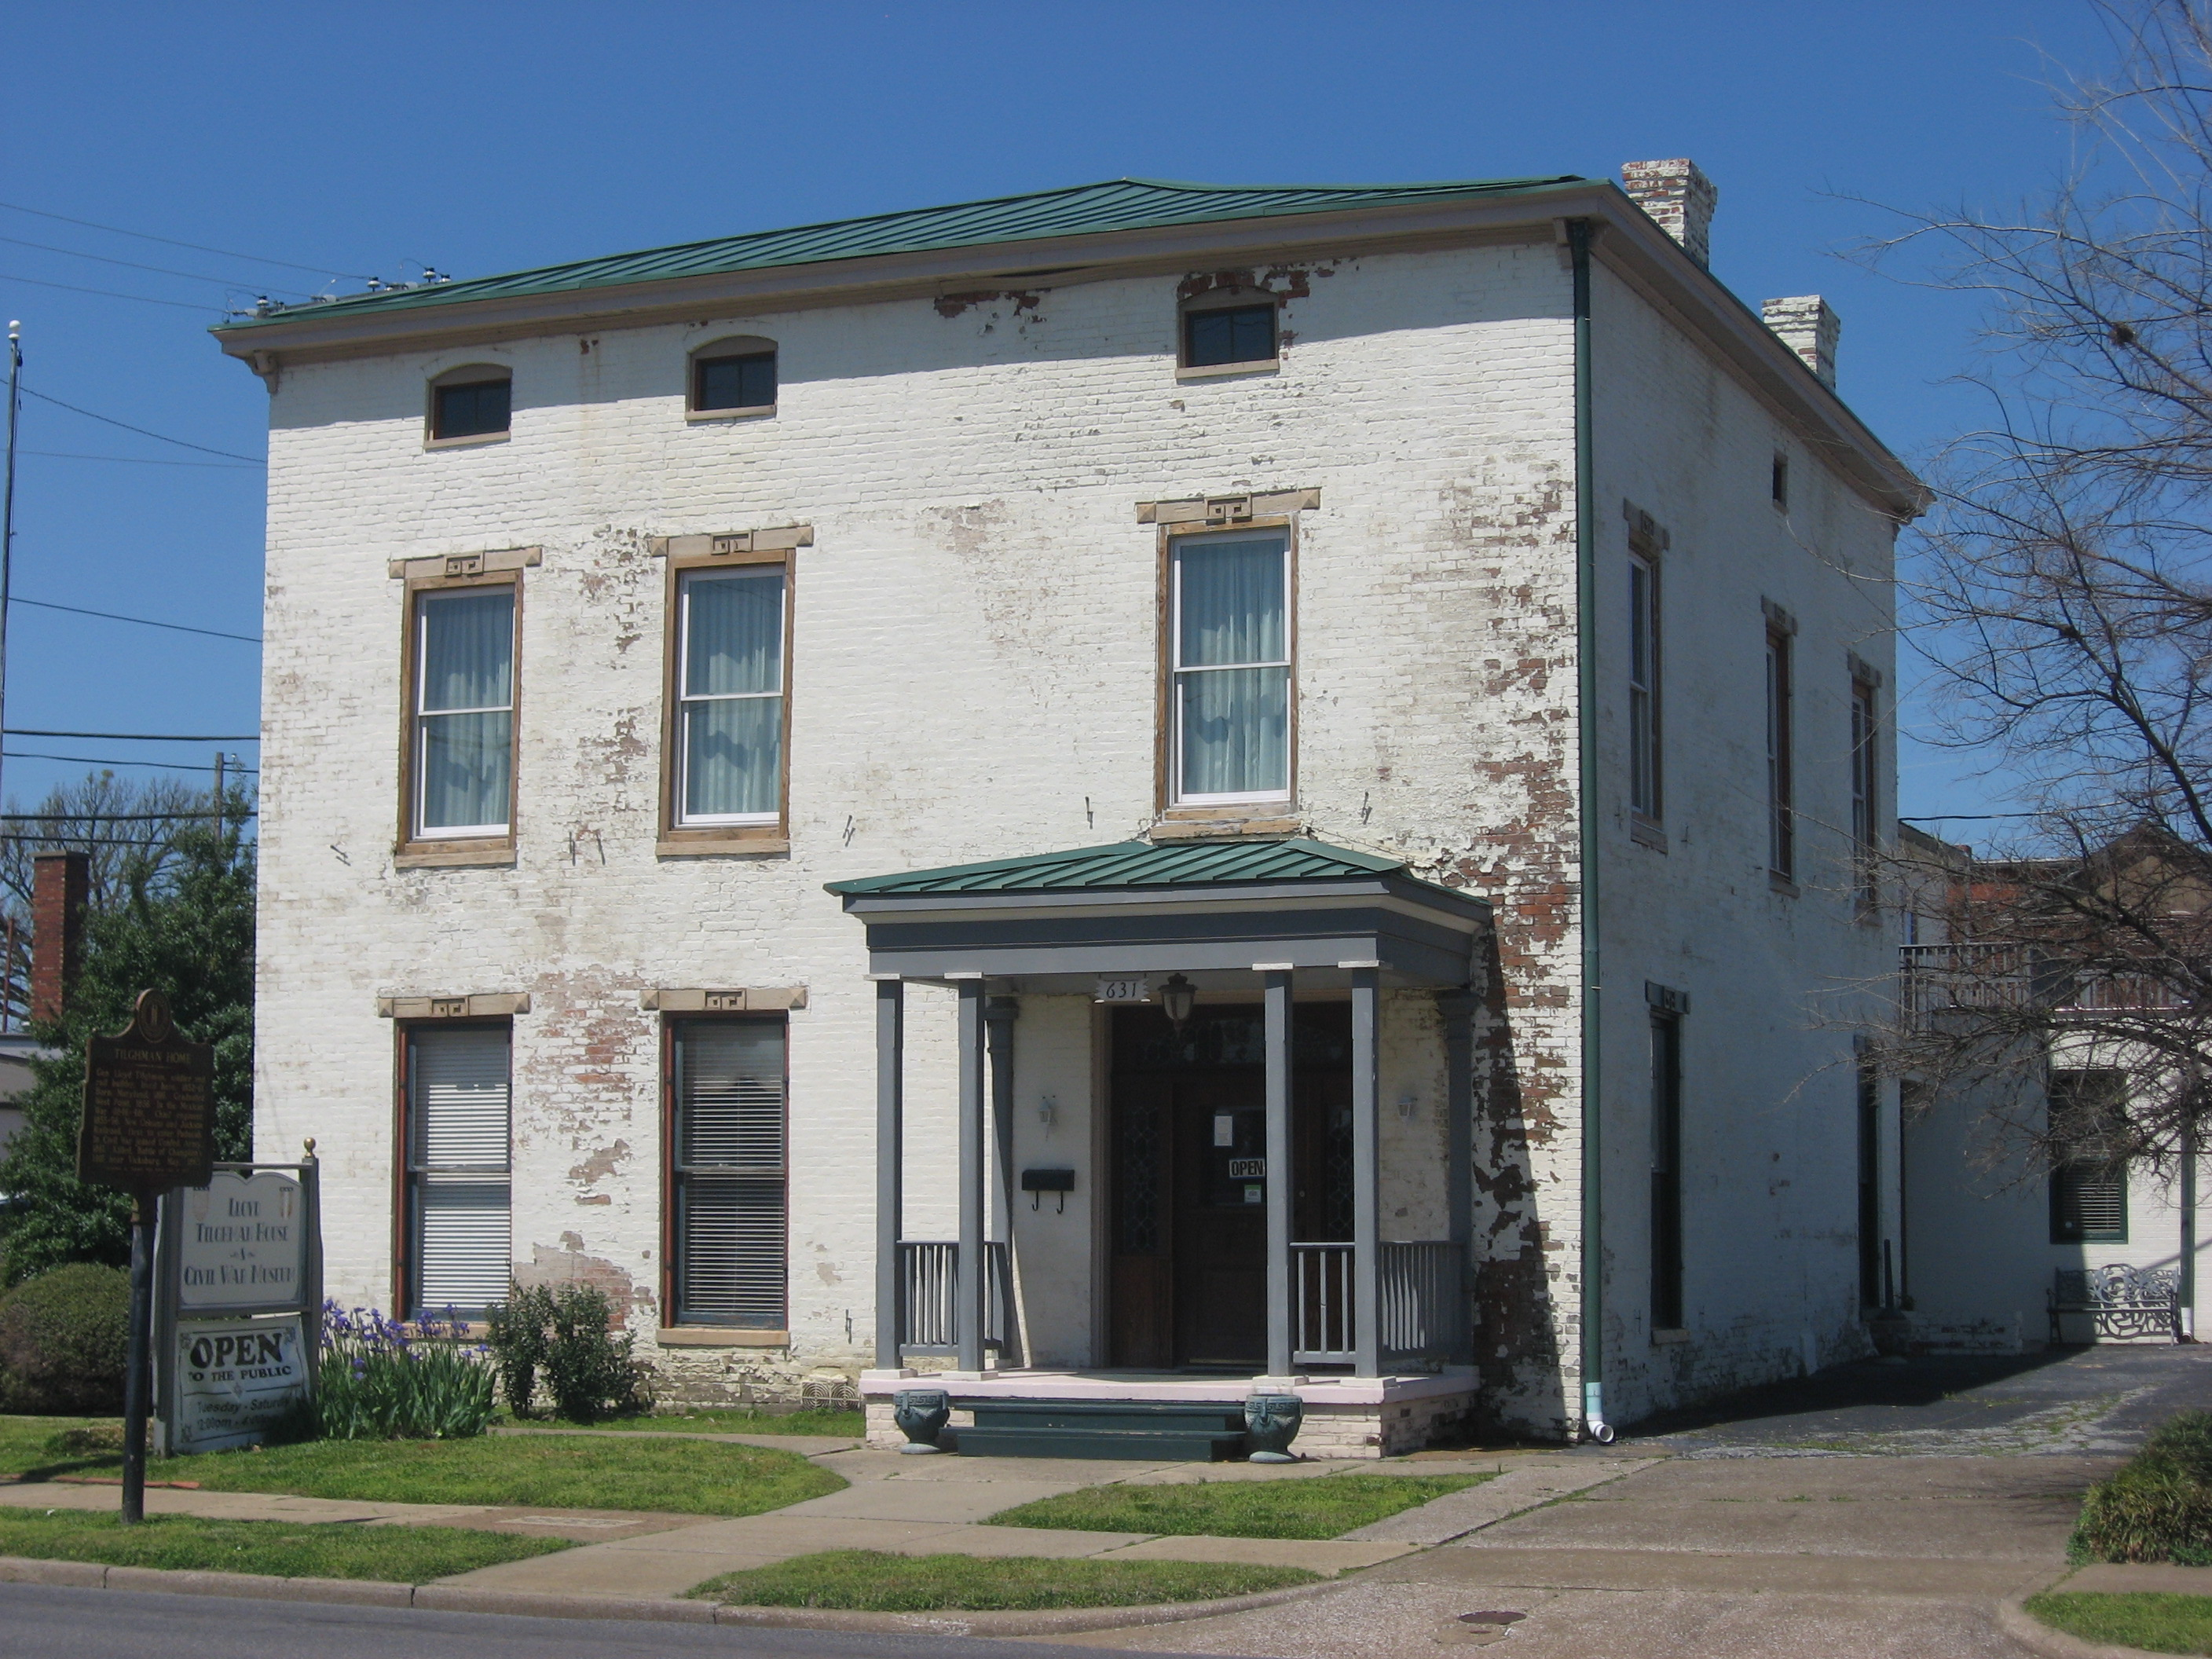 Lloyd Tilghman House and Civil War Museum